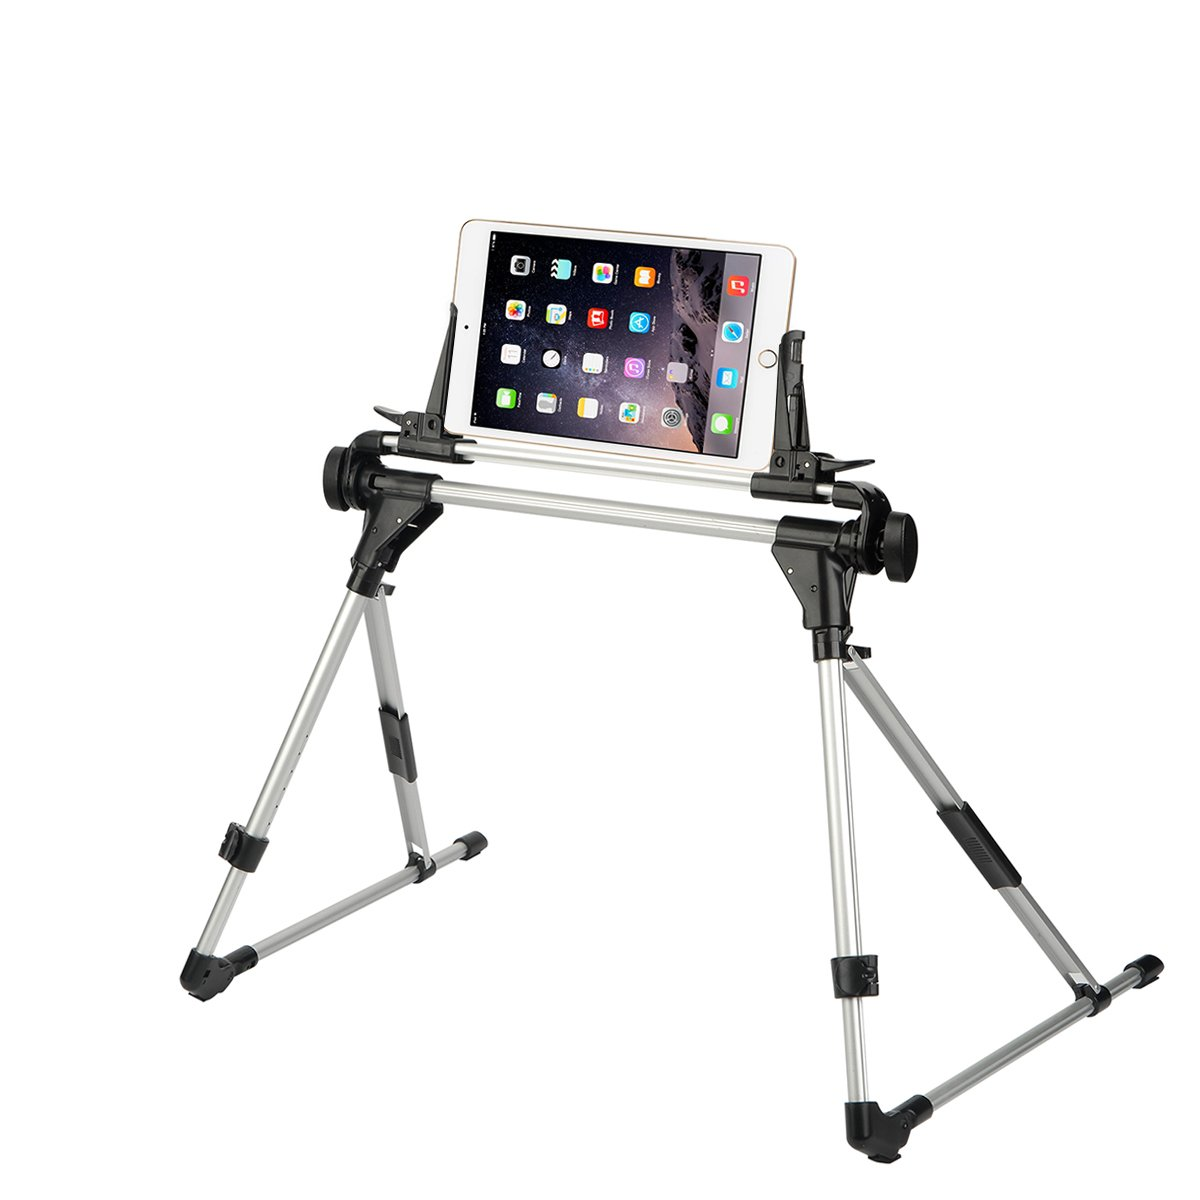 ieGeek Tablet Phone Stand for Bed Sofa Desk, Adjustable and Foldable Holder Fit for iPad iPhone Cellphone Tablet Kindle in Bedroom Kitchen Floor, Aluminum